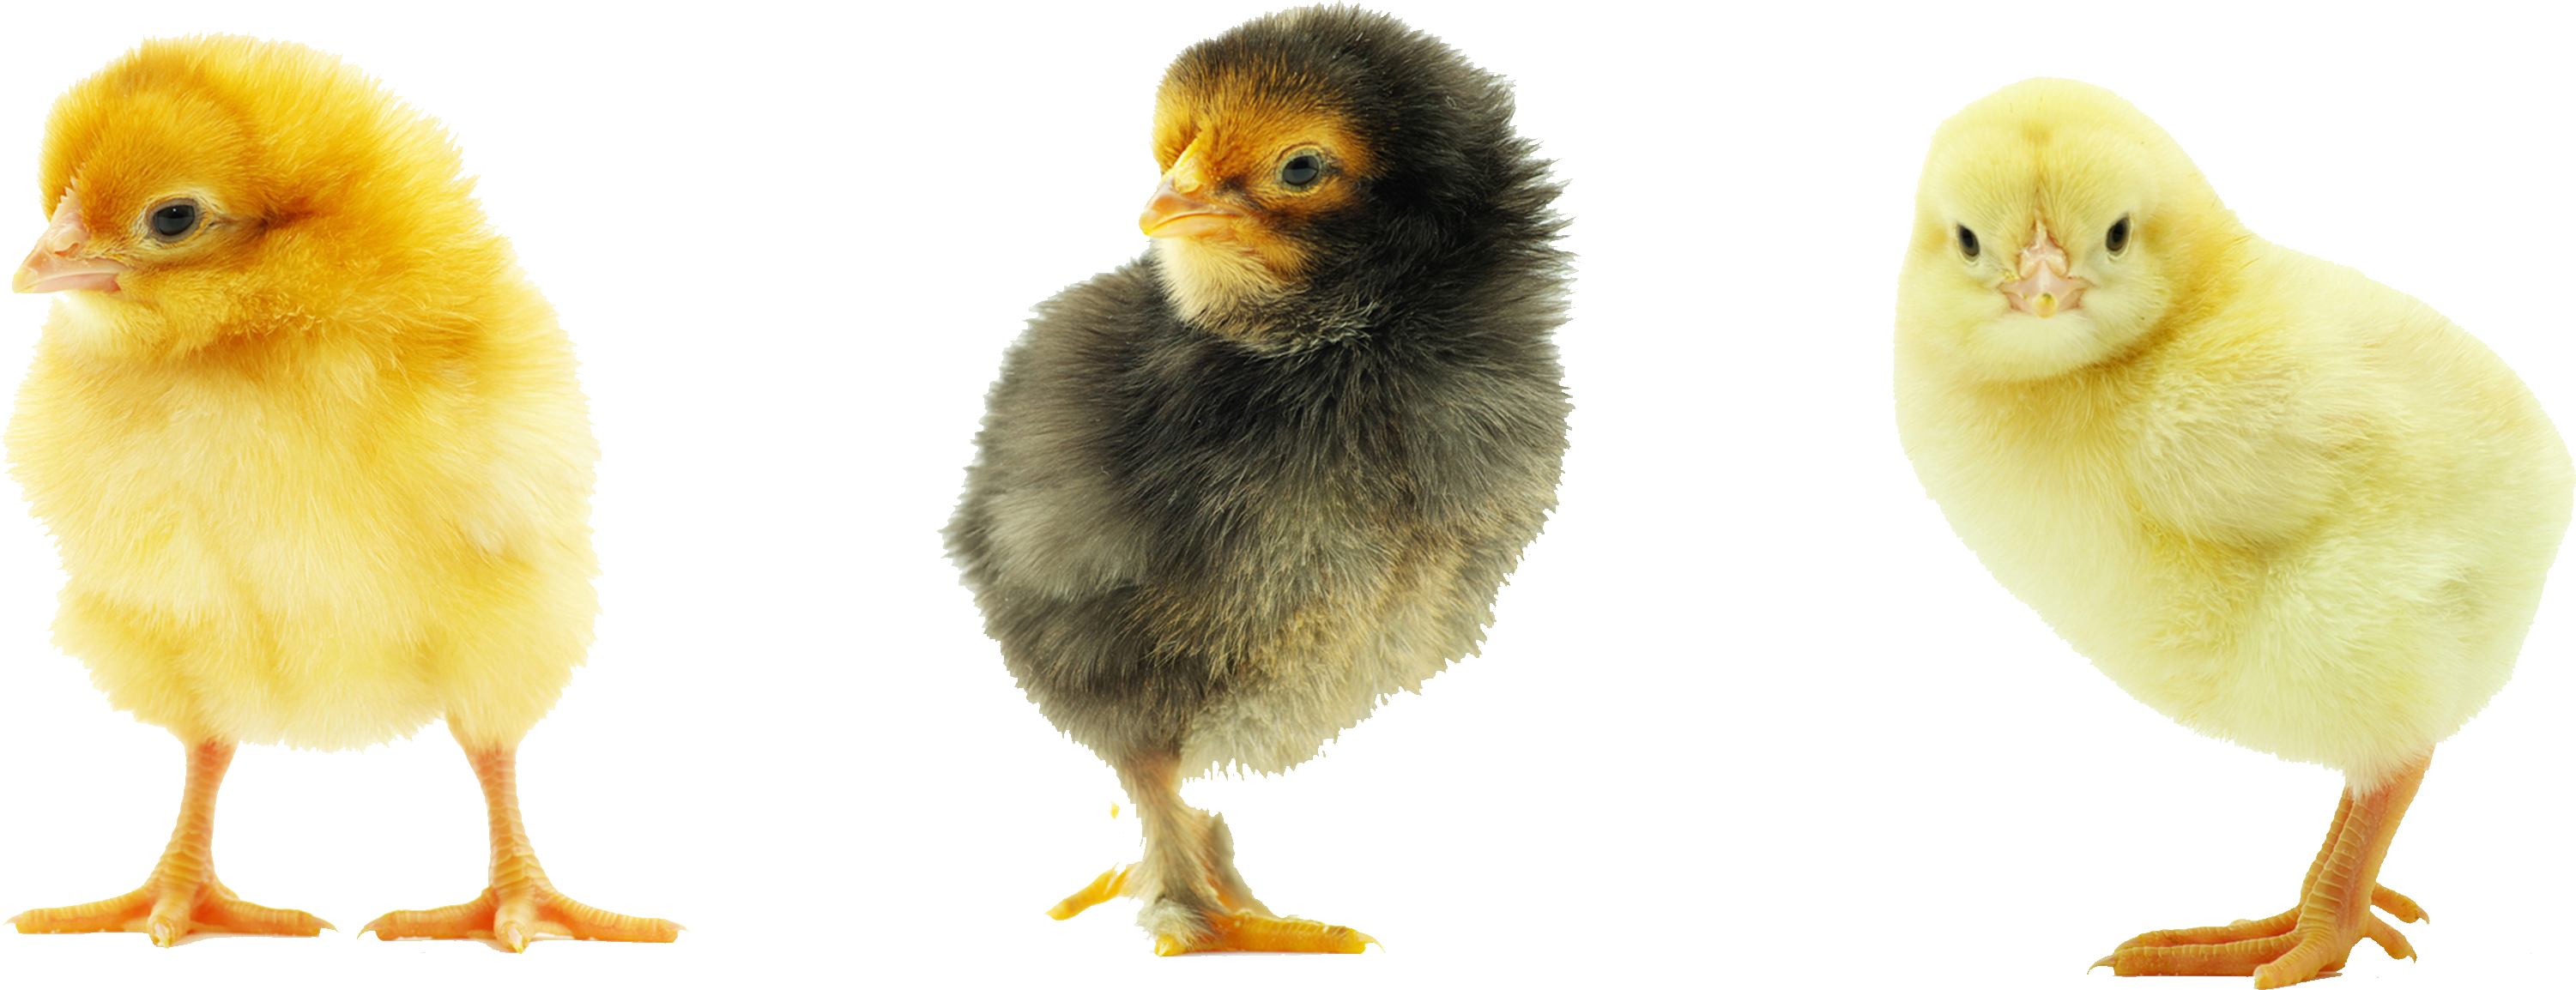 Baby Chicken Transparent Background PNG Image